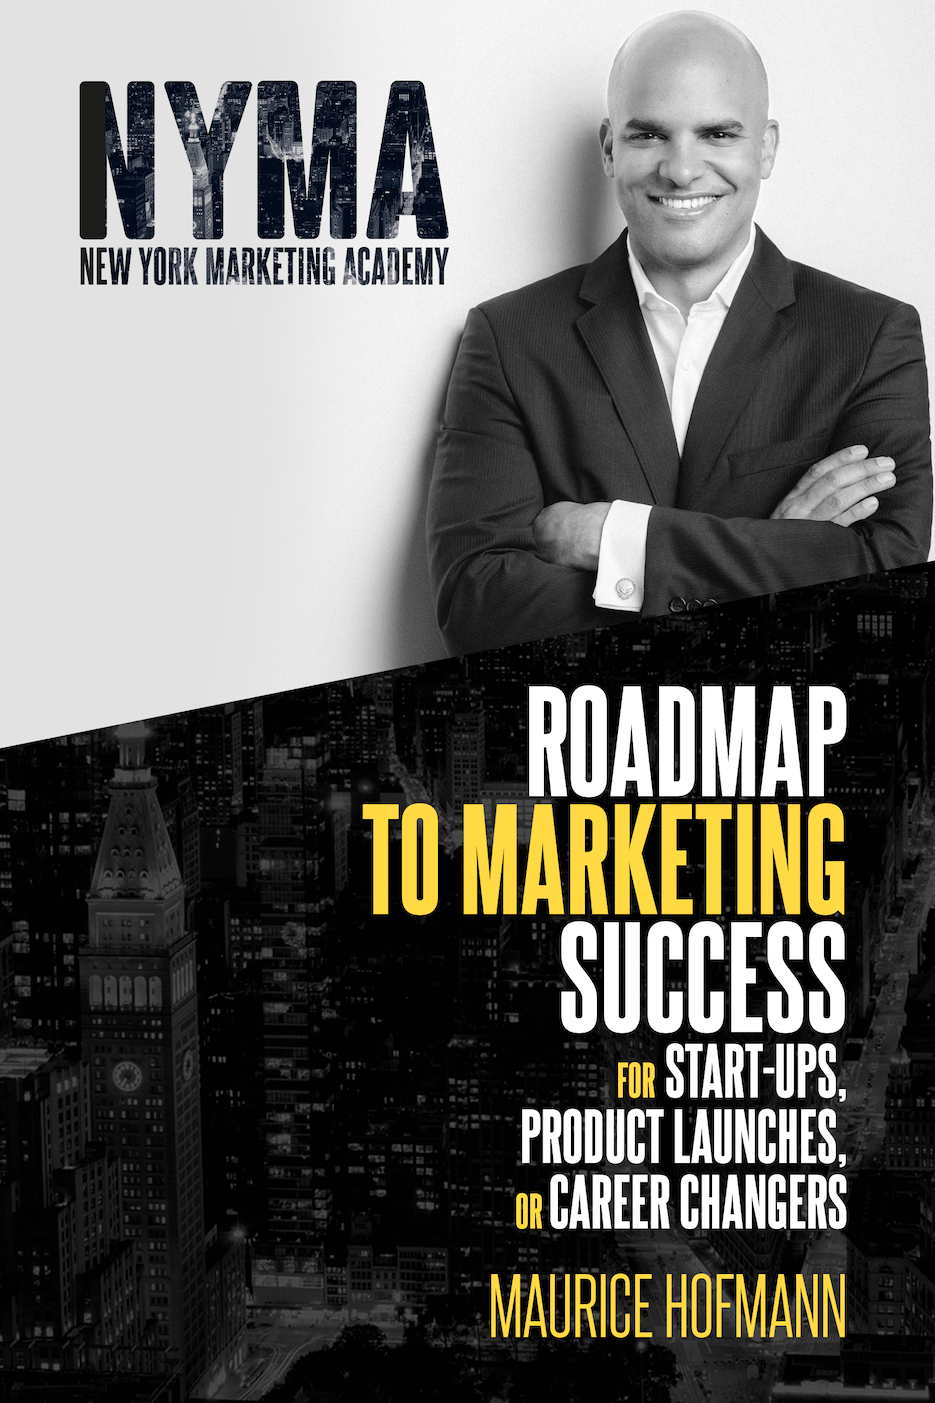 """Roadmap to Marketing Success"" Reveals Pragmatic Marketing and Go-to-Market Steps for Every Business in 2021"